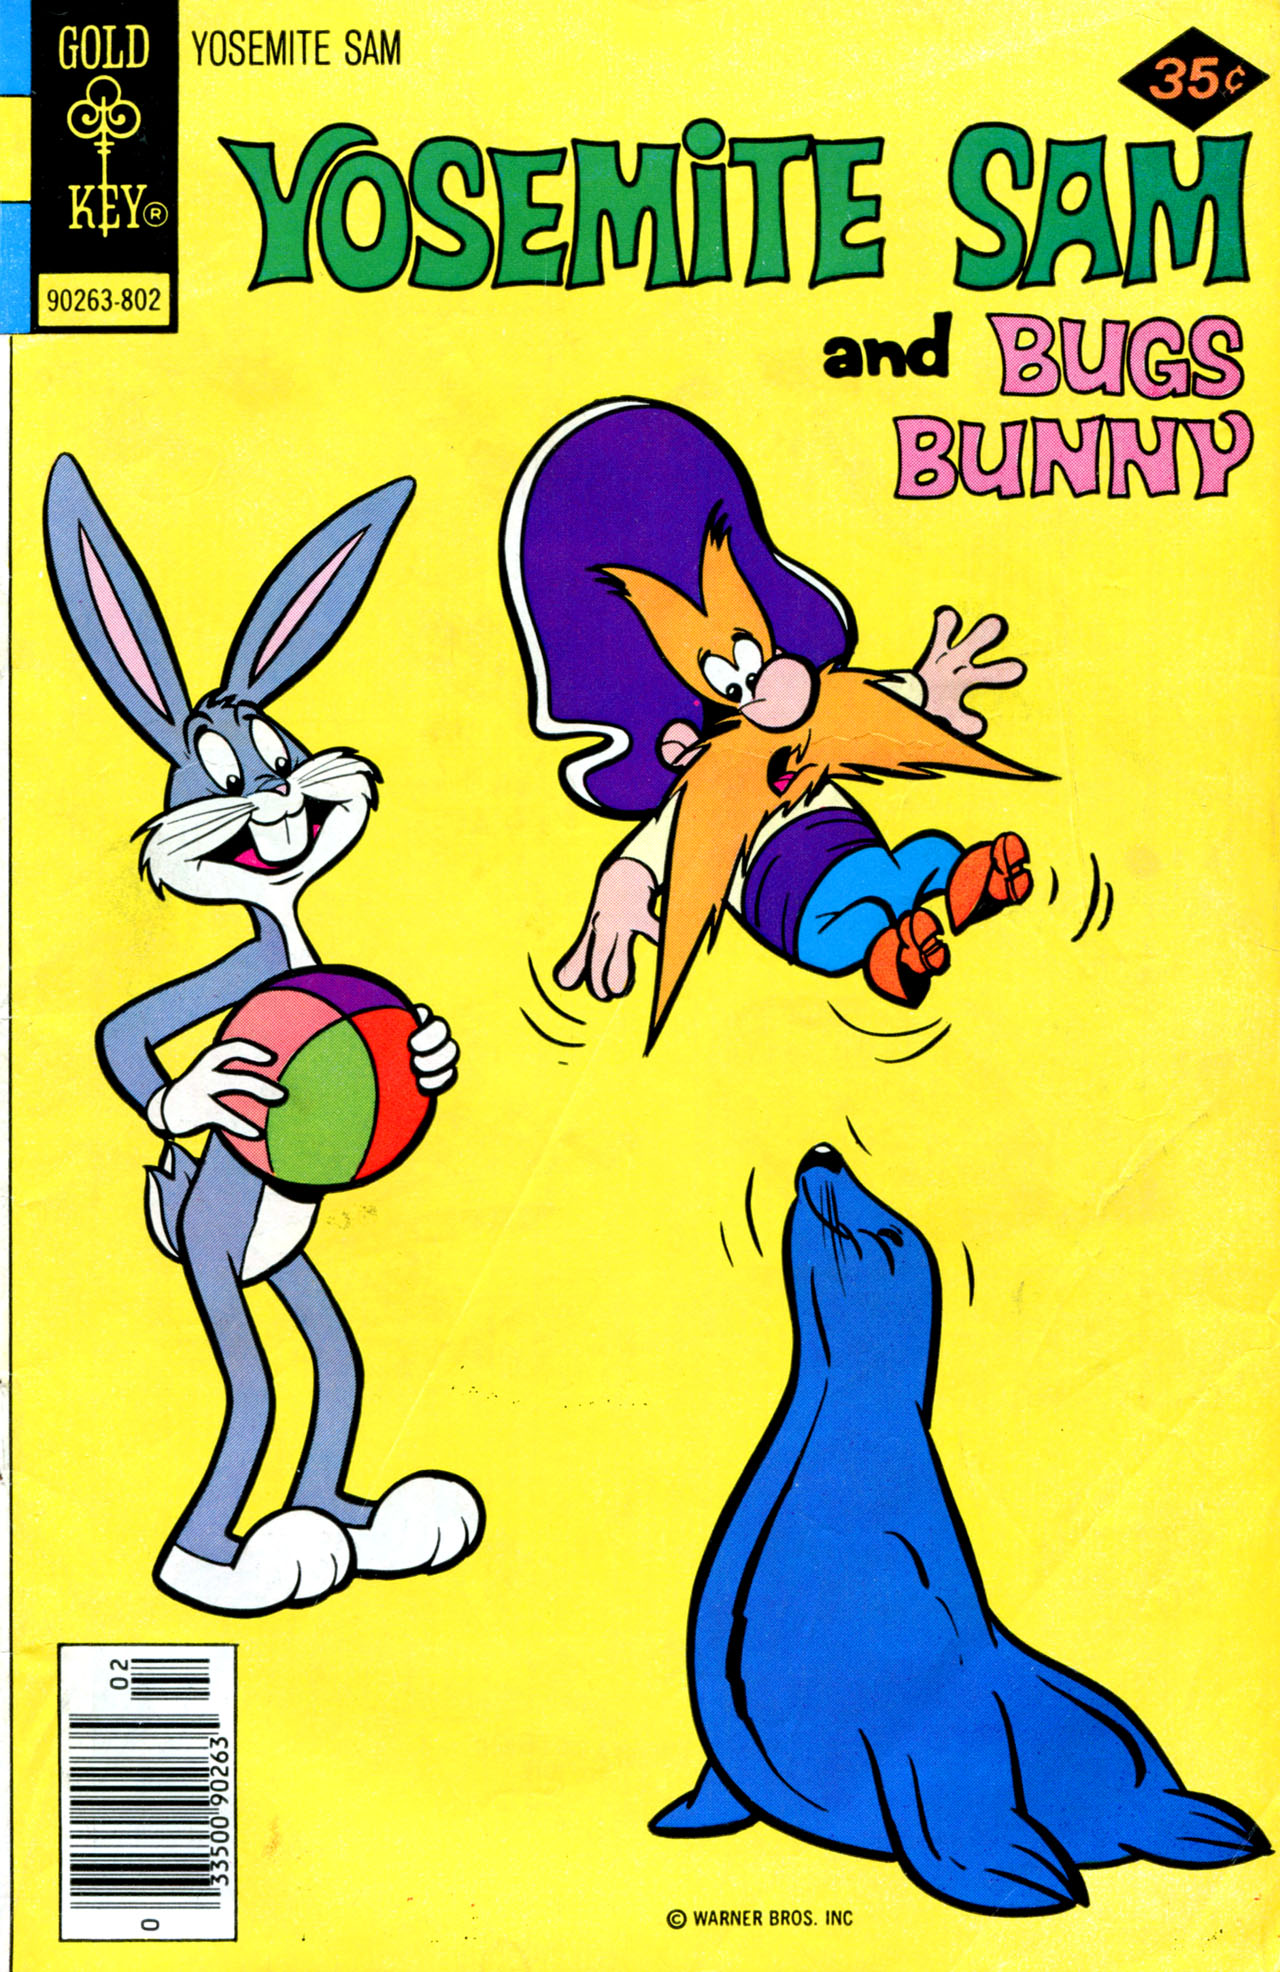 Yosemite Sam and Bugs Bunny 50 Page 1